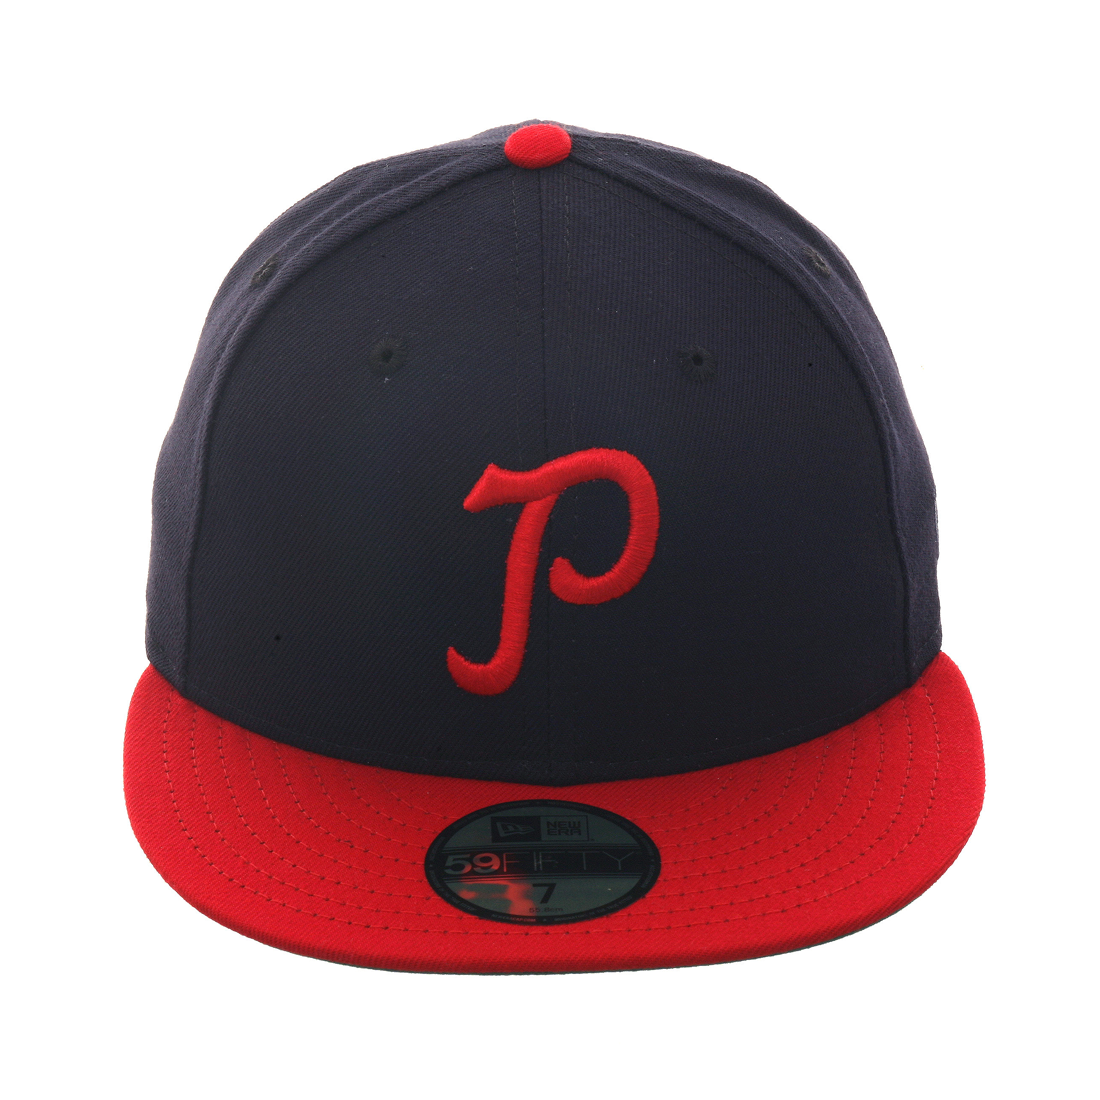 Exclusive New Era Portland Beavers 1956 Hat - 2T Navy, Red